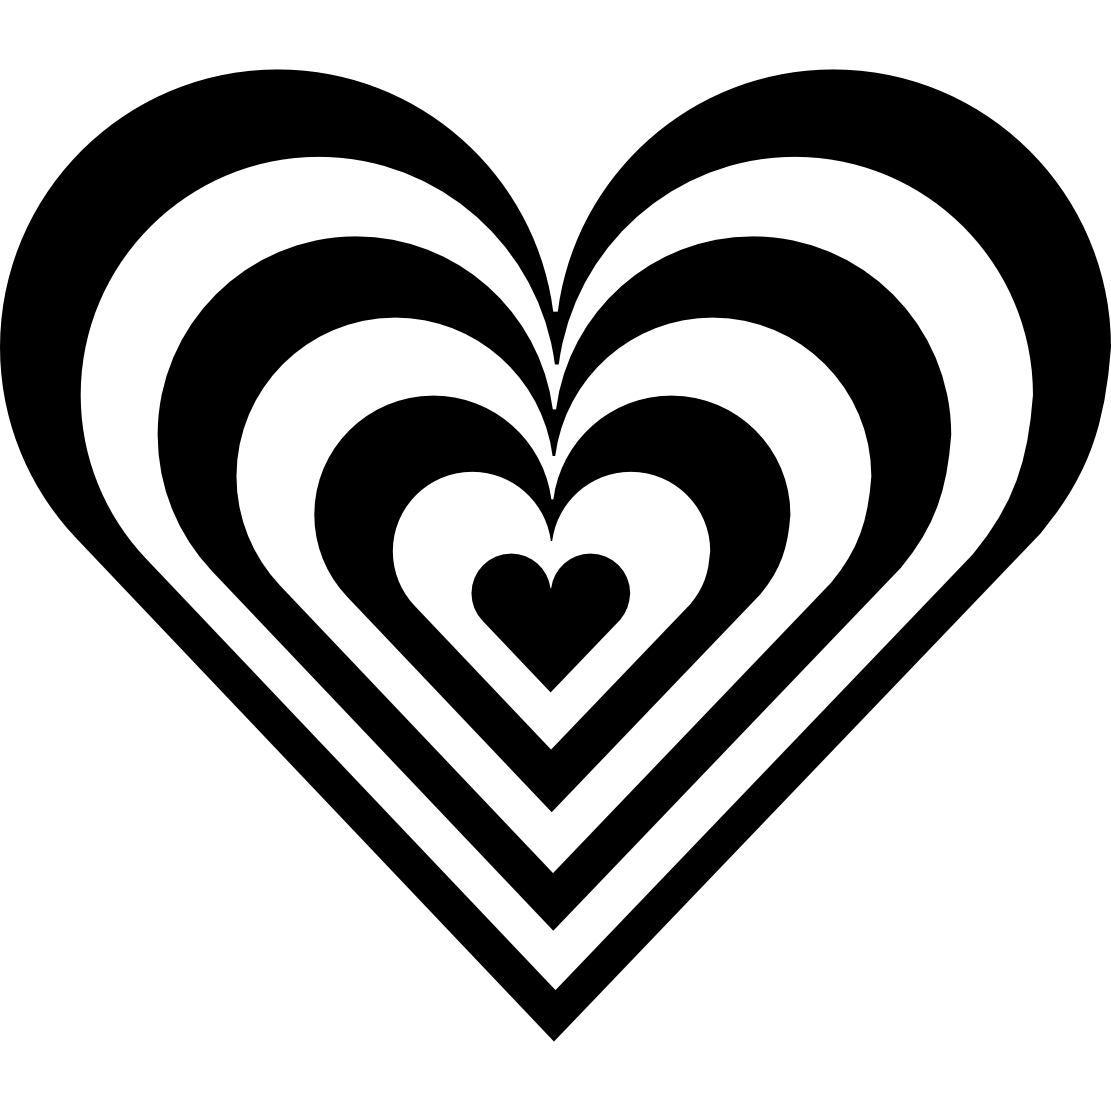 Solid black heart clipart clipart freeuse library Fancy Black Heart Clipart | Letters Format clipart freeuse library